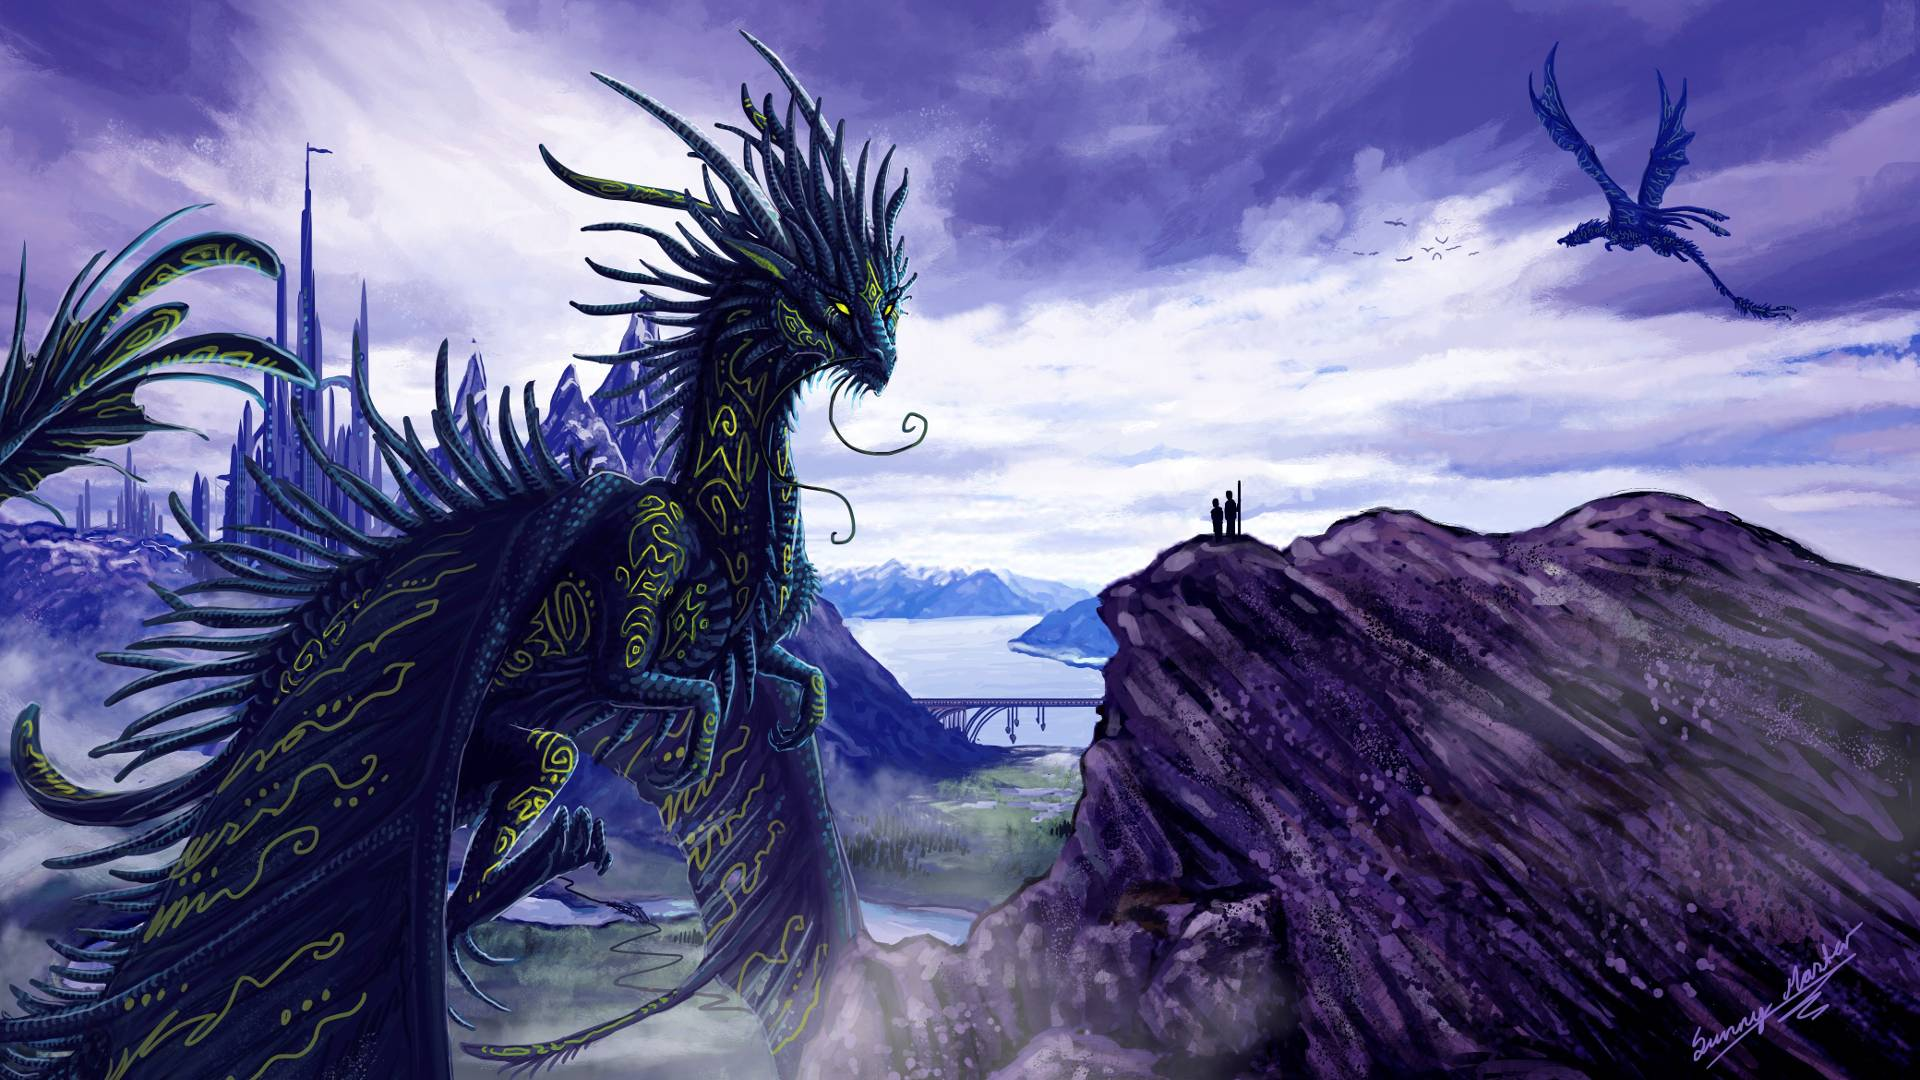 dragon wallpaper widescreen high resolution - photo #13